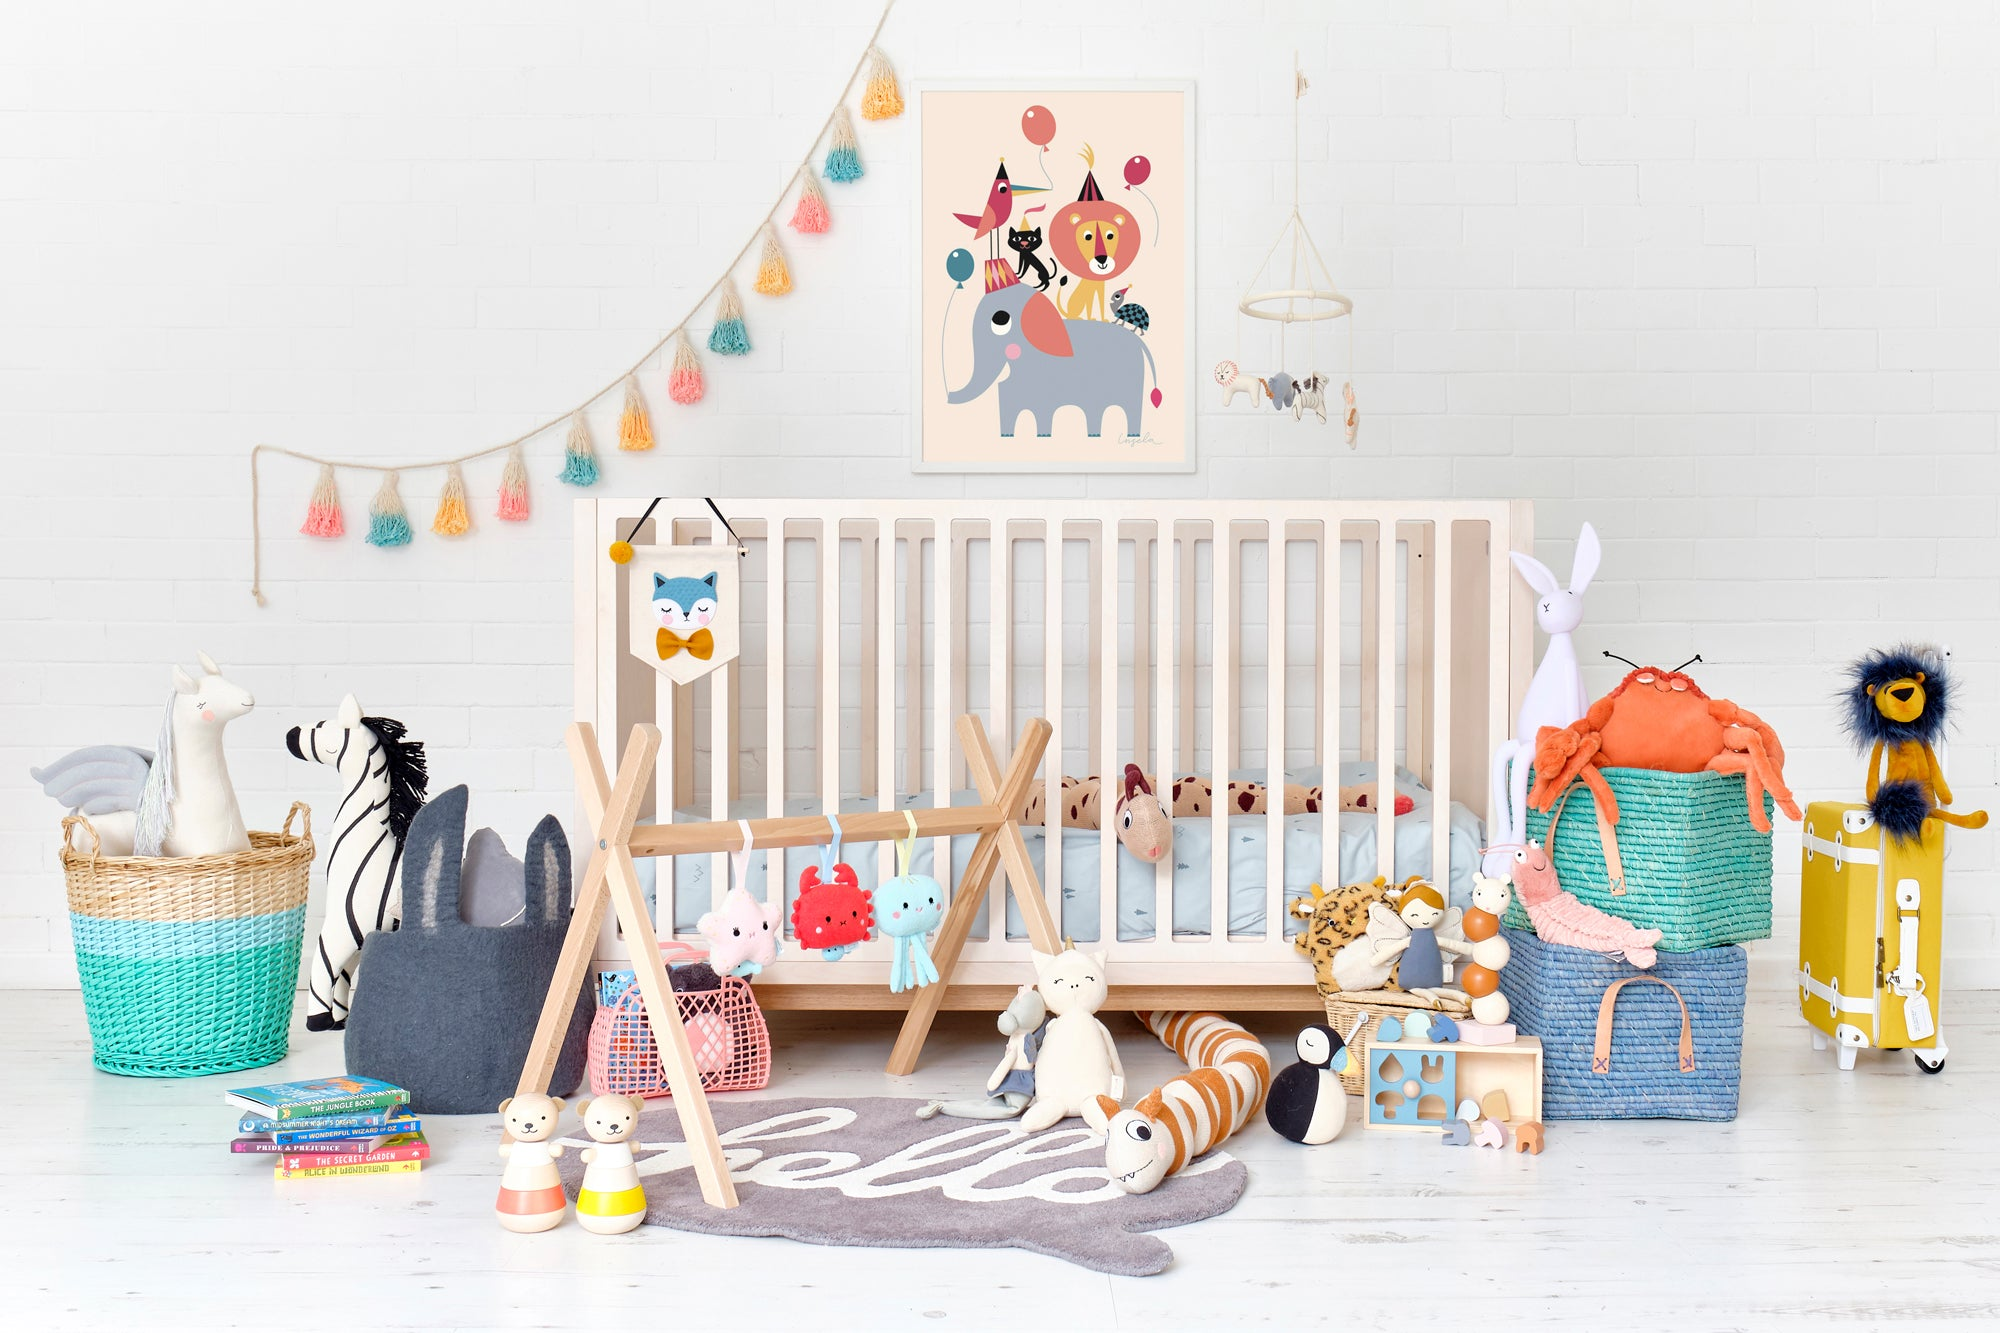 'One Big World' Nursery, Toys and Accessories, styled by Bobby Rabbit.